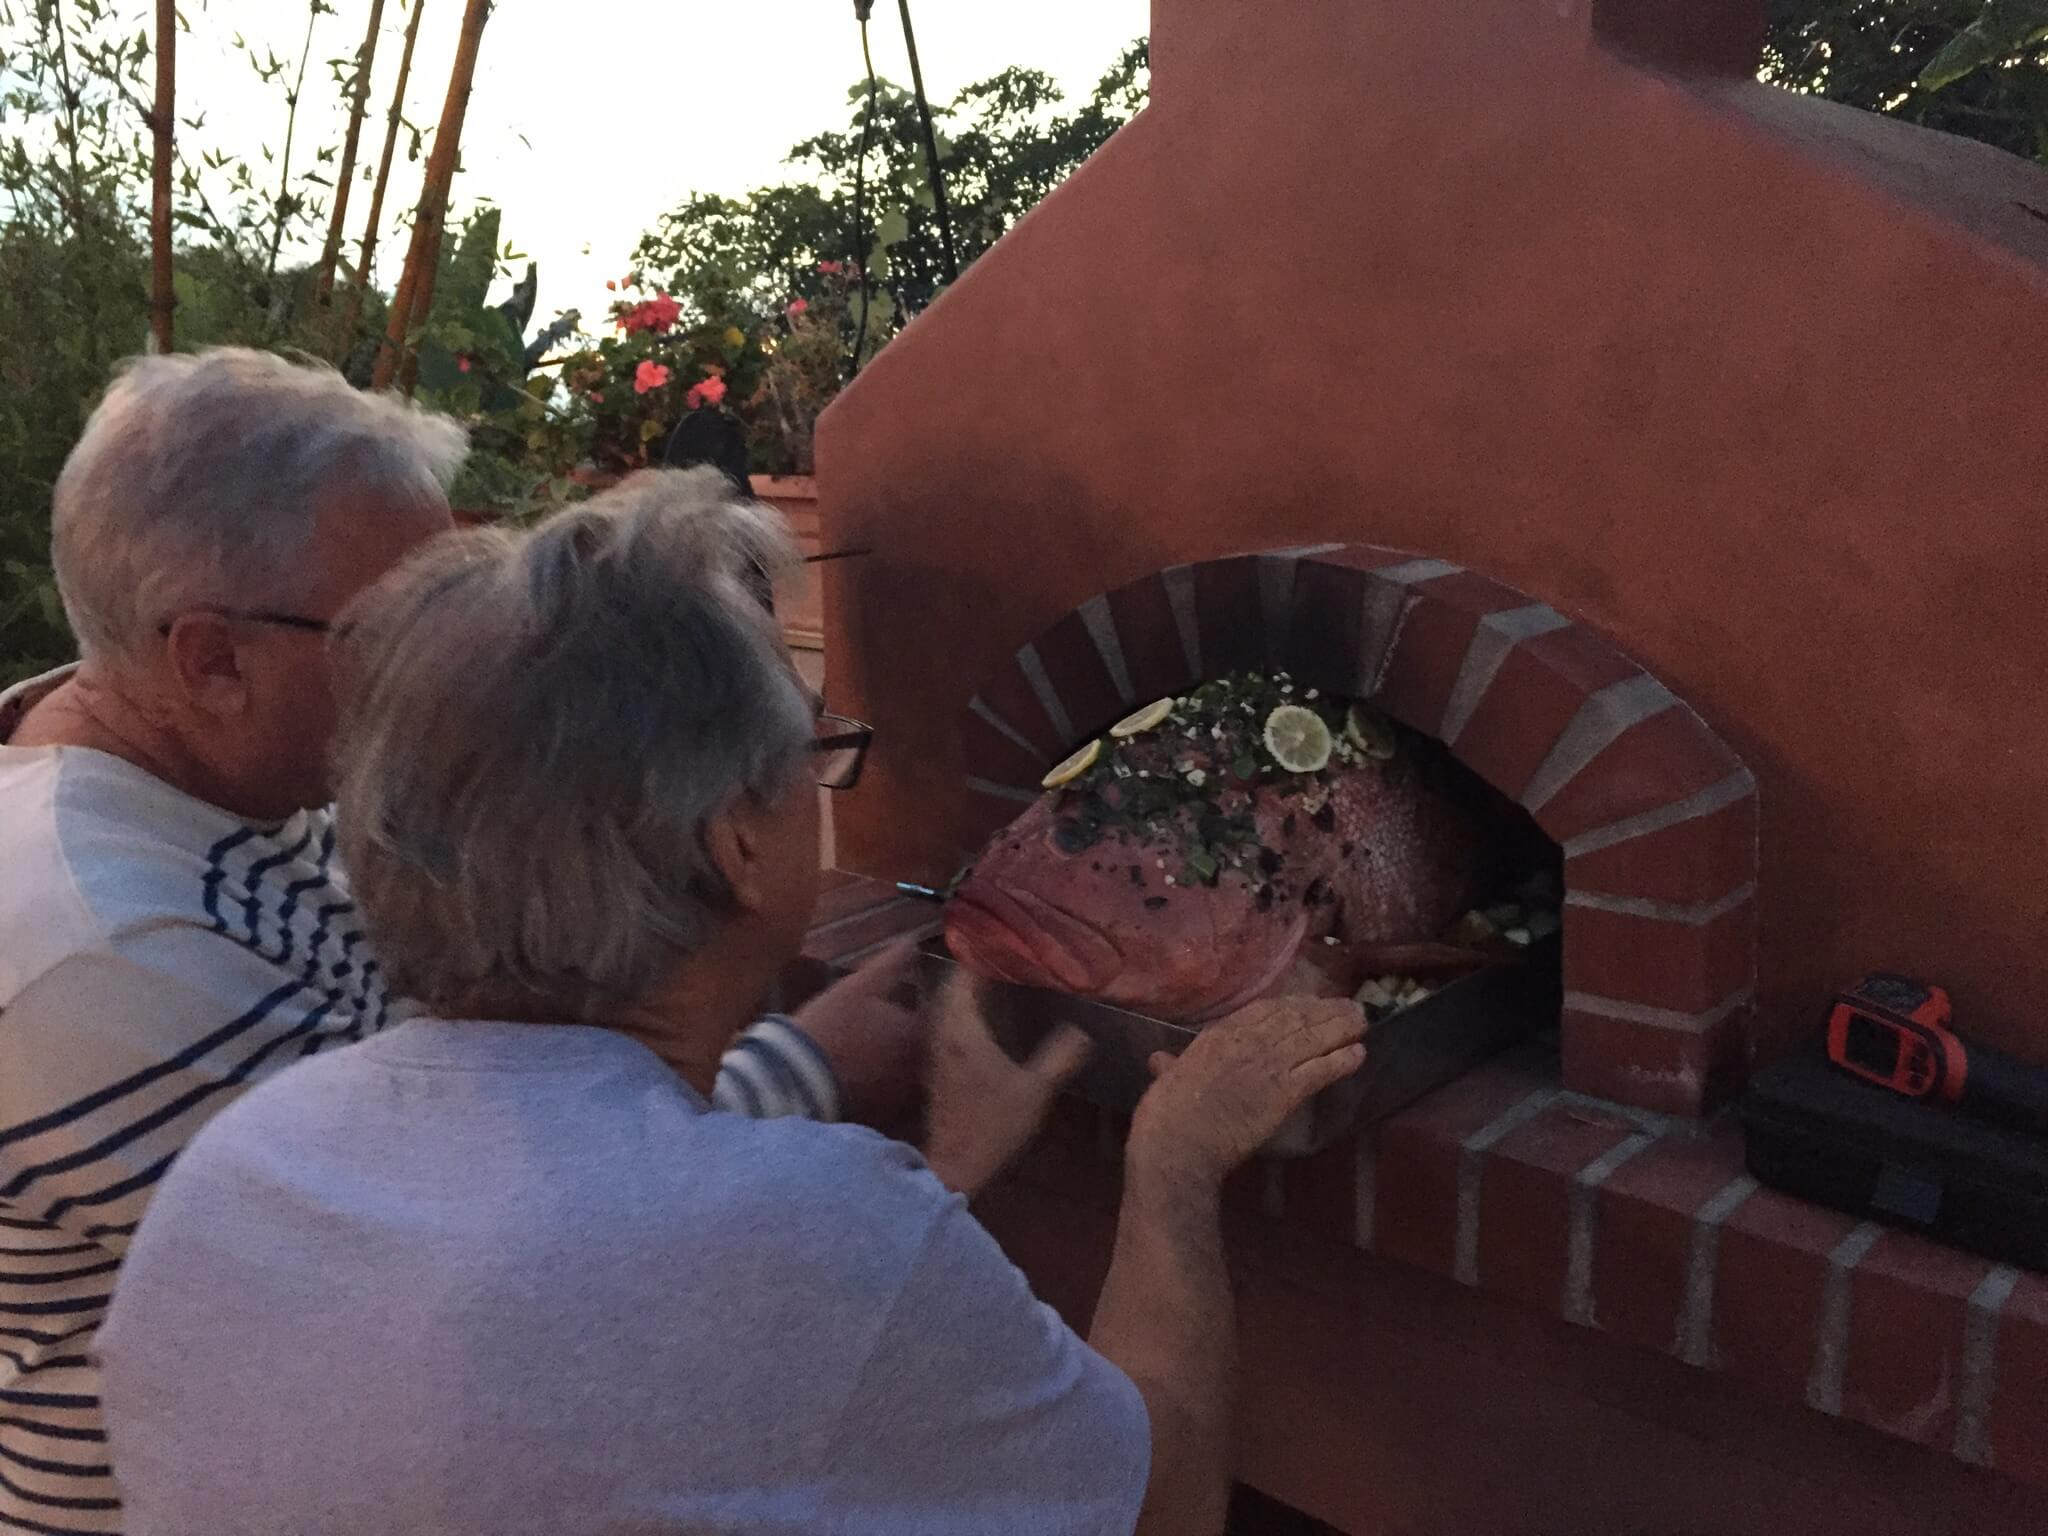 Two men easing a 28lb Pink Grouper into a Toscana pizza oven with zero inches to spare